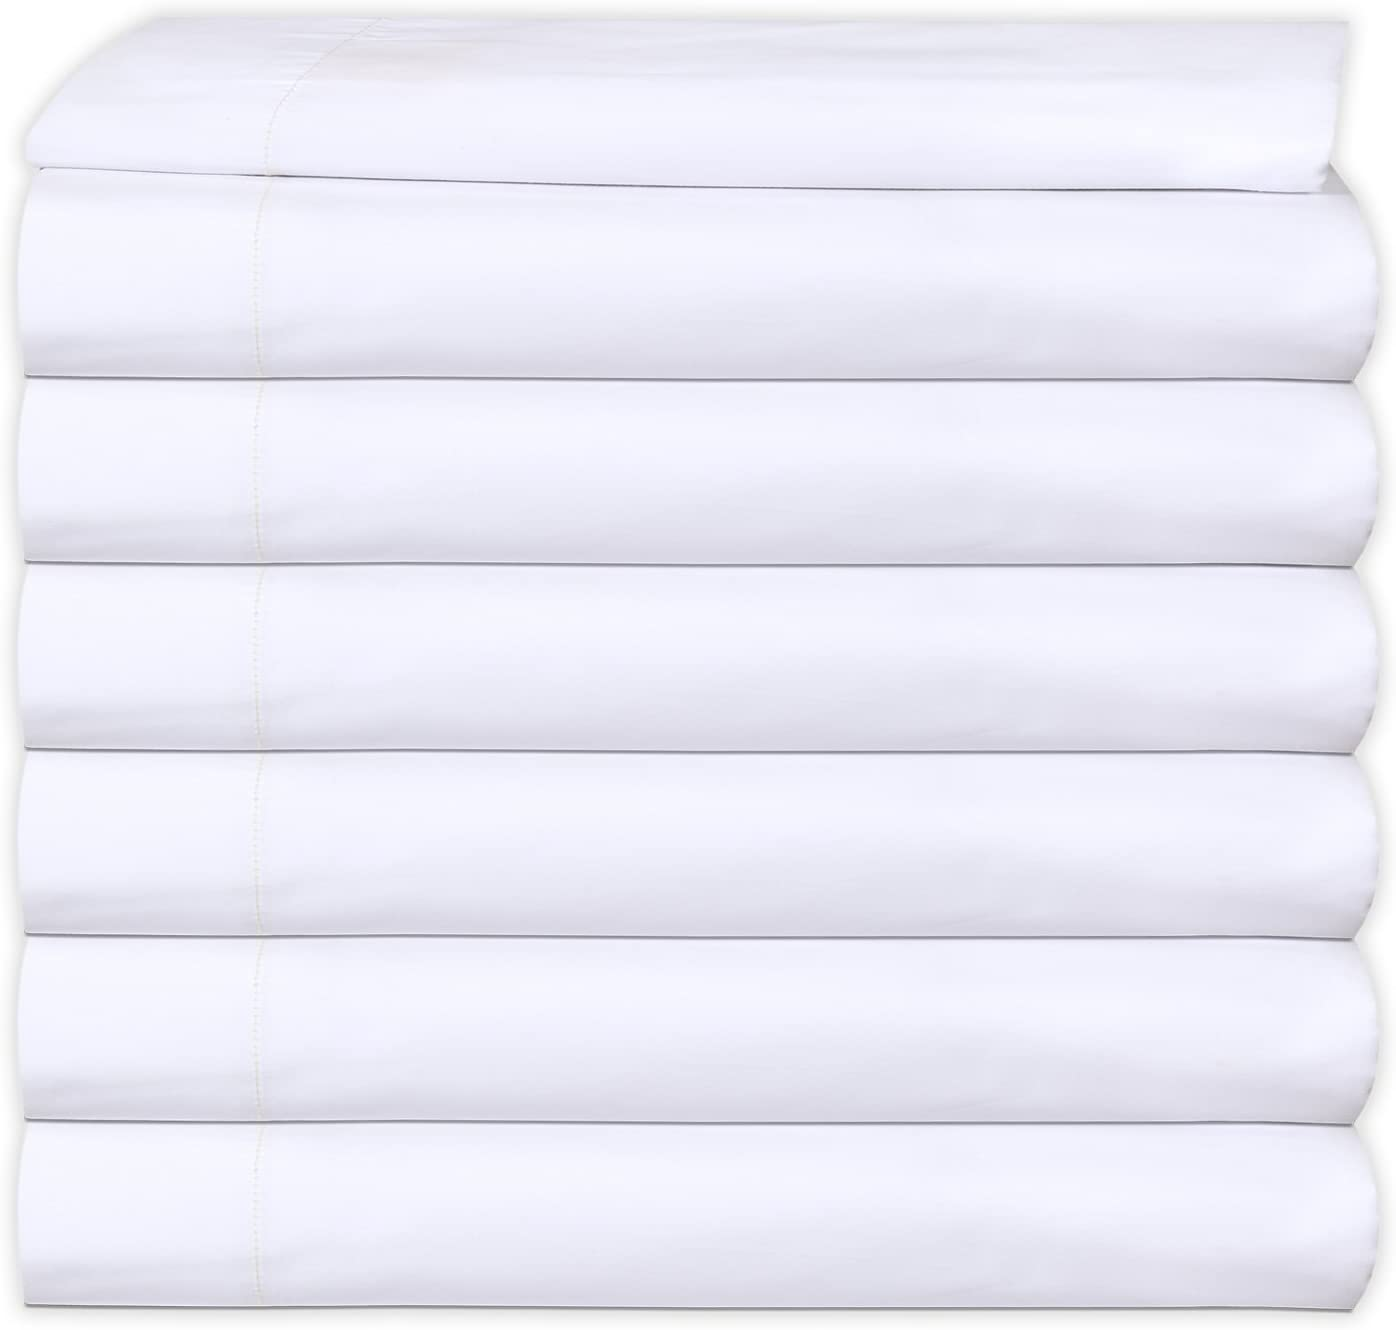 6 Flat Sheet White T-200 Percale in Bulk Linen Ranking TOP13 High quality Hotel Available